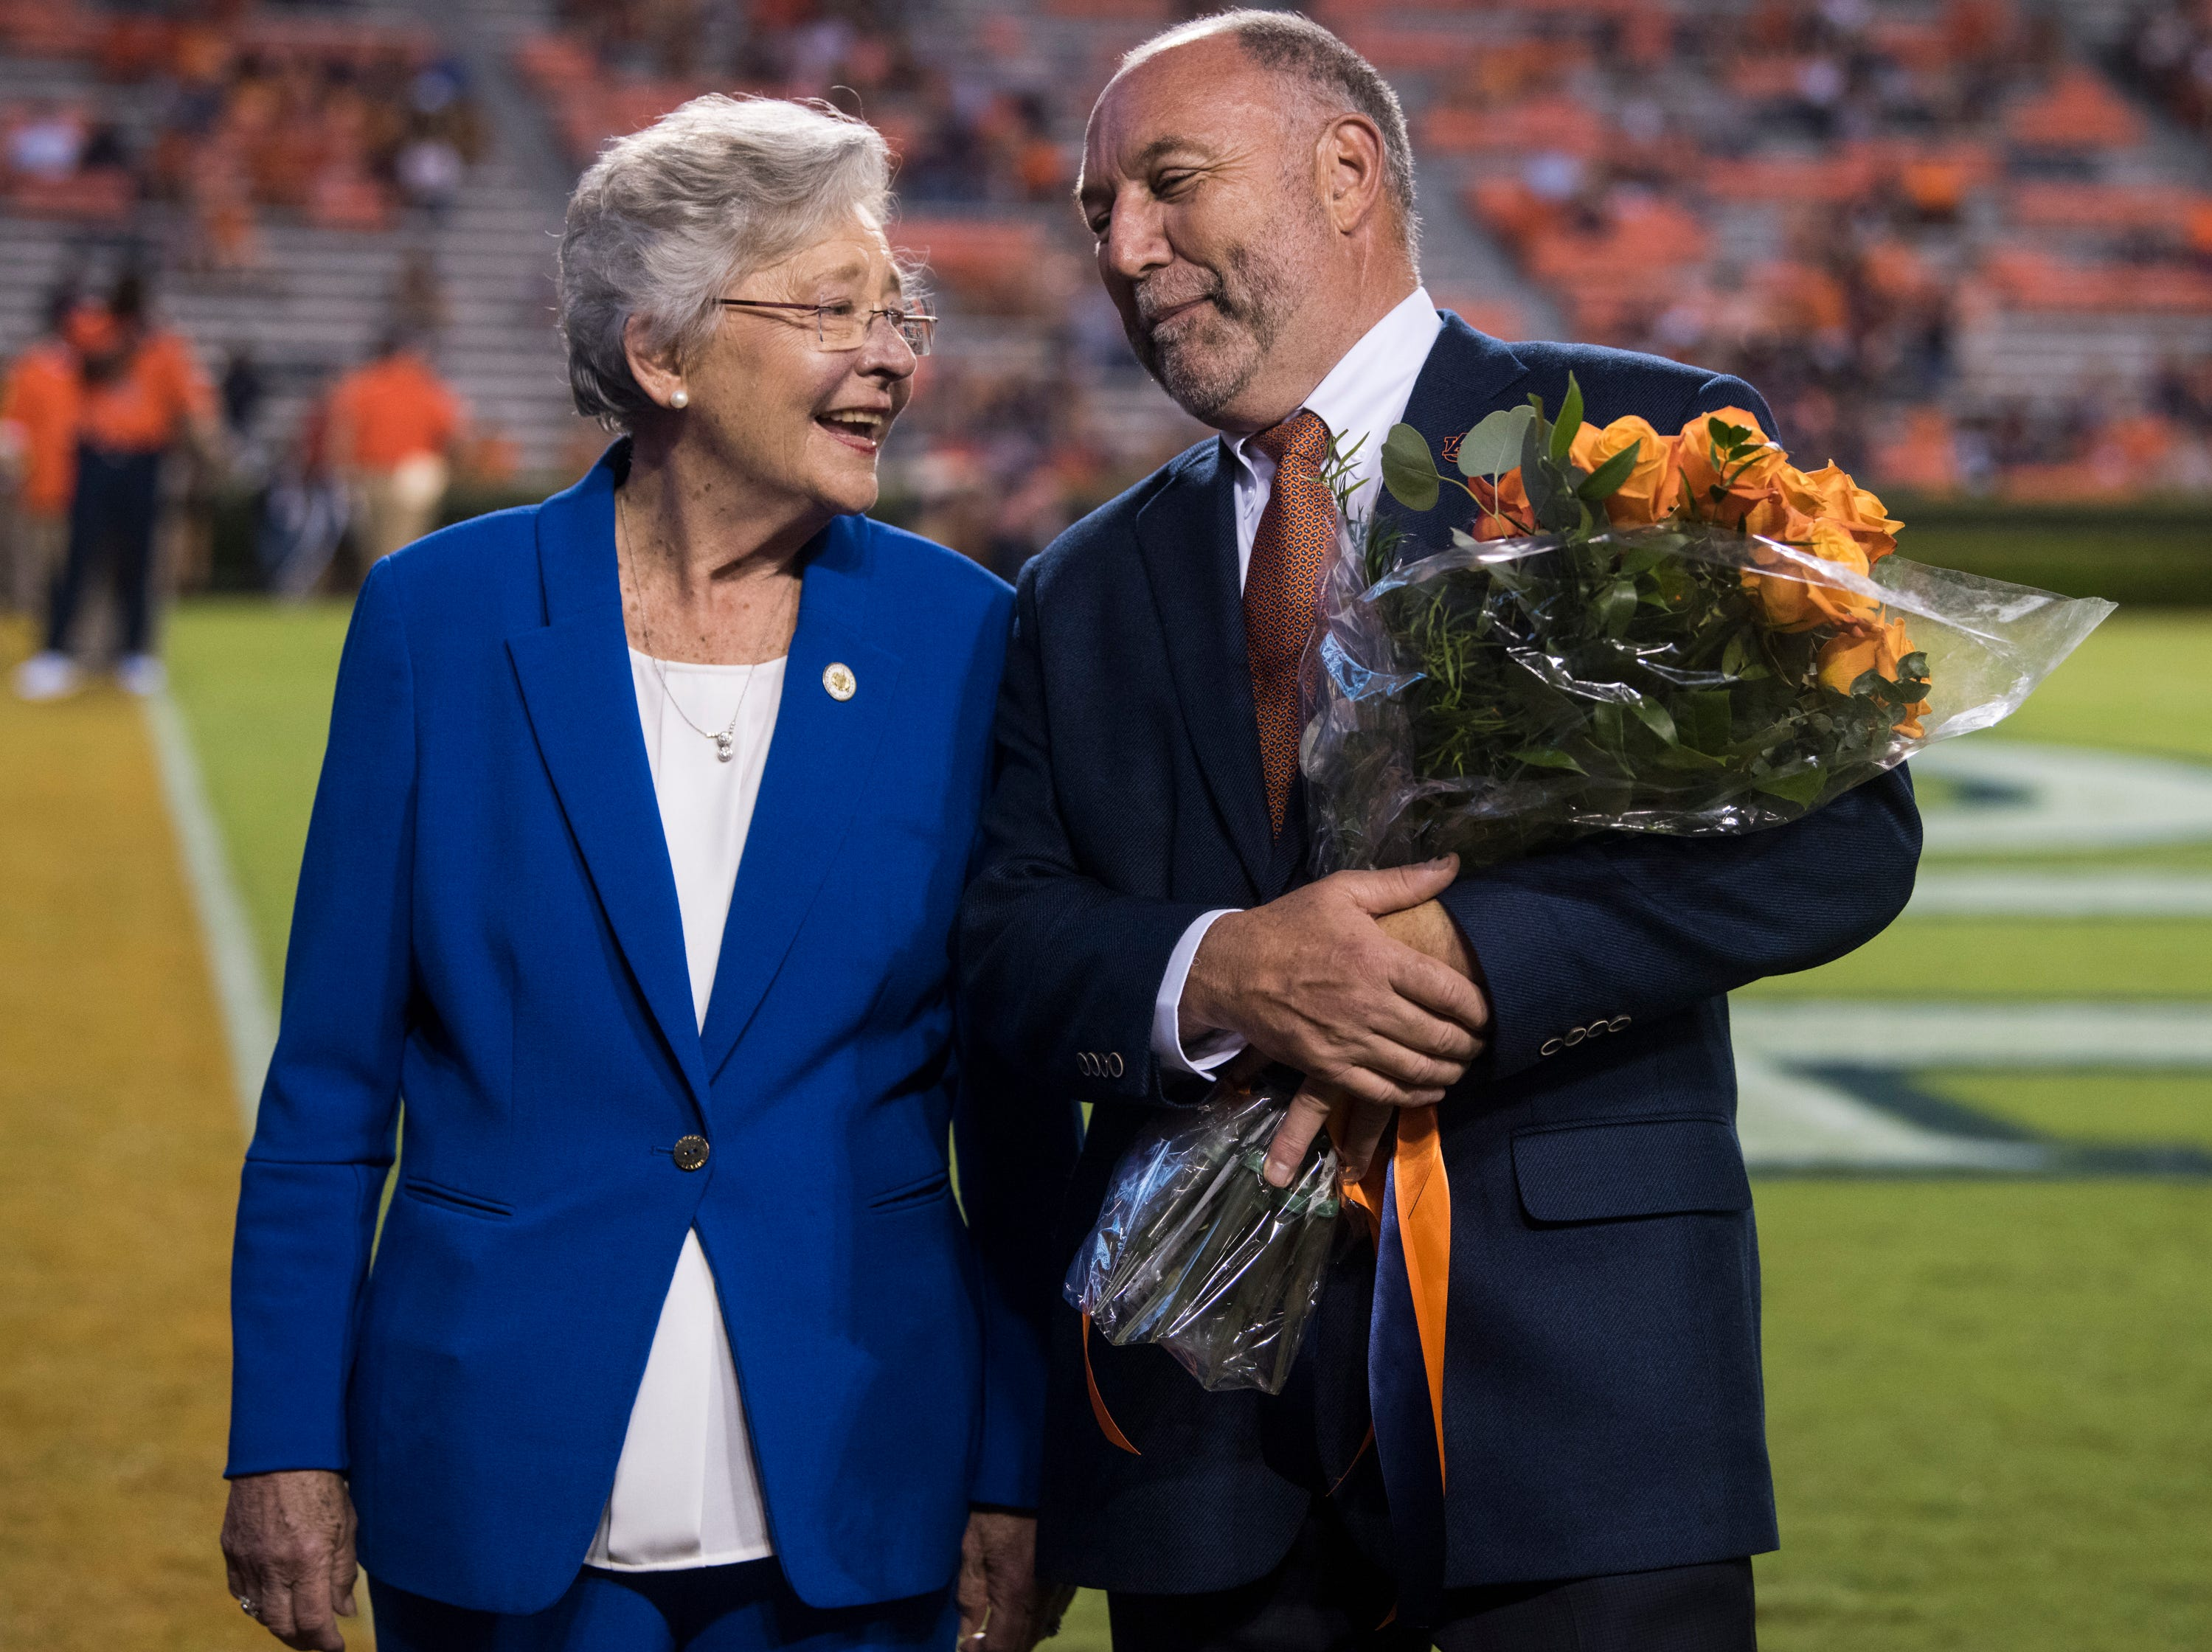 Alabama Gov. Kay Ivey and Auburn University President Steven Leath pose for a picture during the homecoming ceremony at Jordan-Hare Stadium in Auburn, Ala., on Saturday, Sept. 29, 2018. Auburn defeated  Southern Miss 24-13.